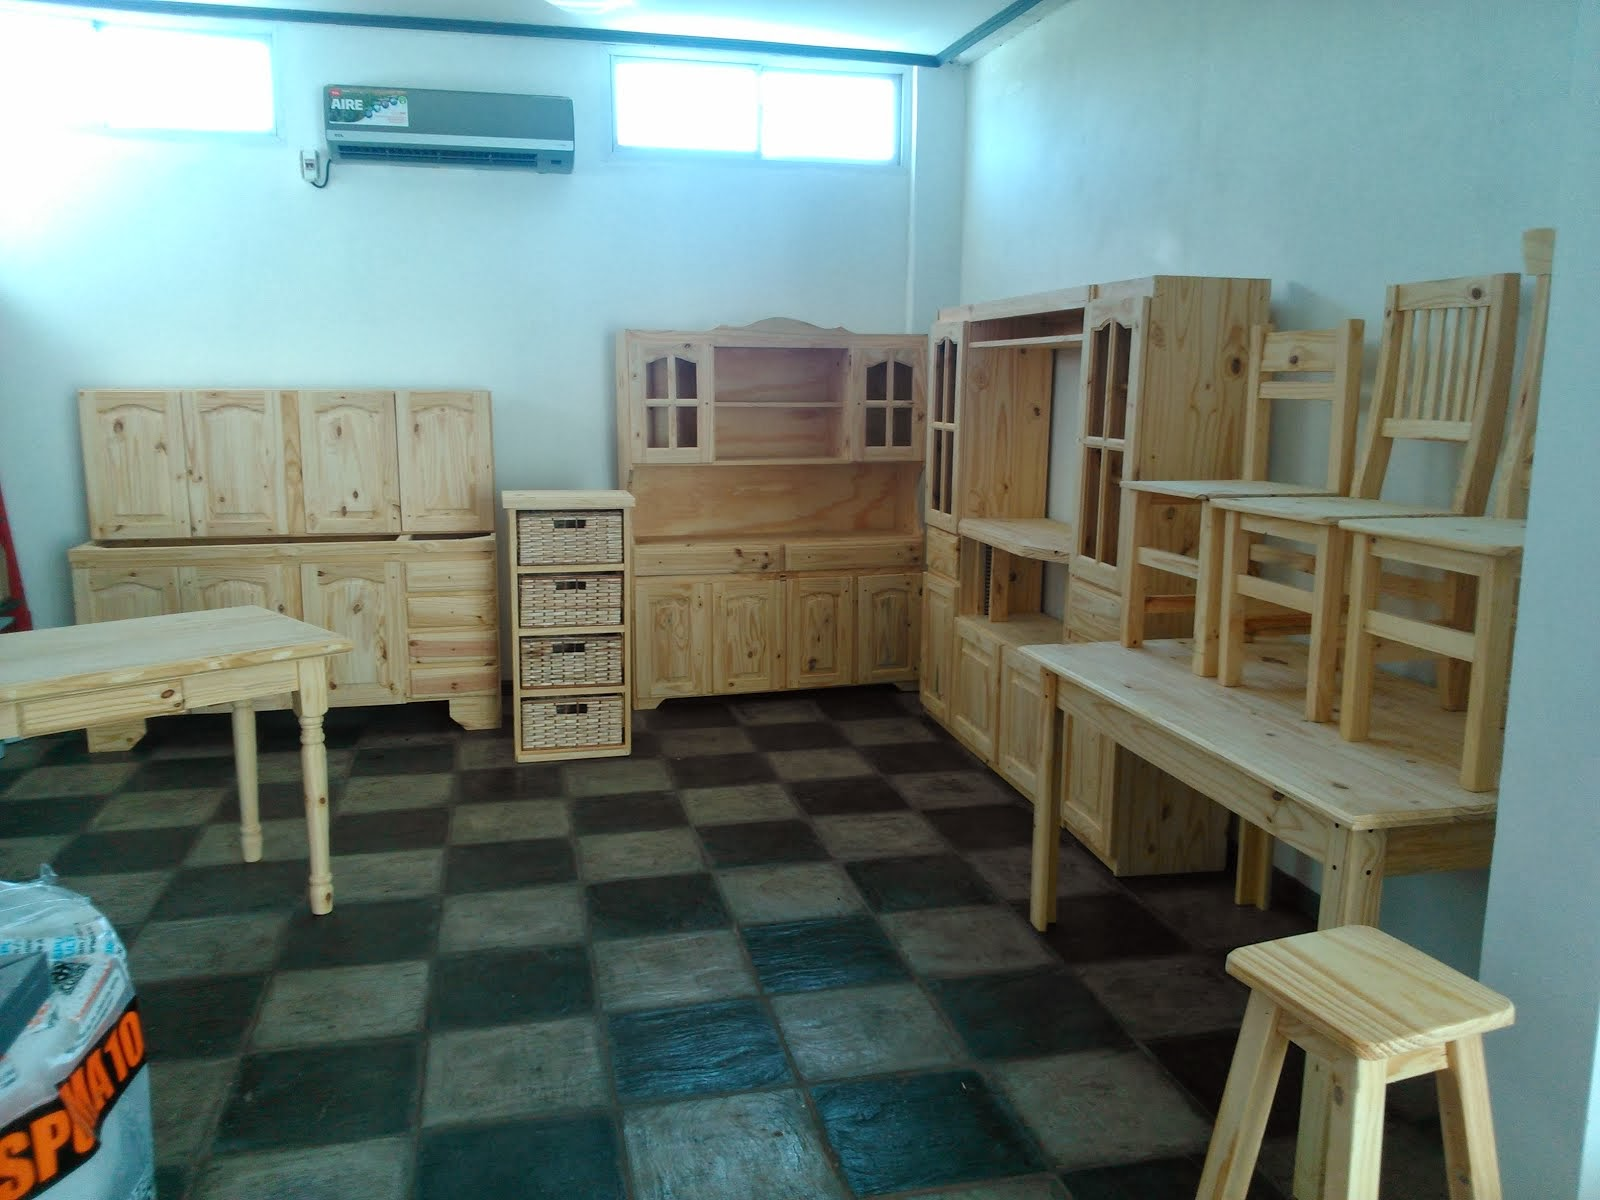 imagenes de muebles de pino - photo#12